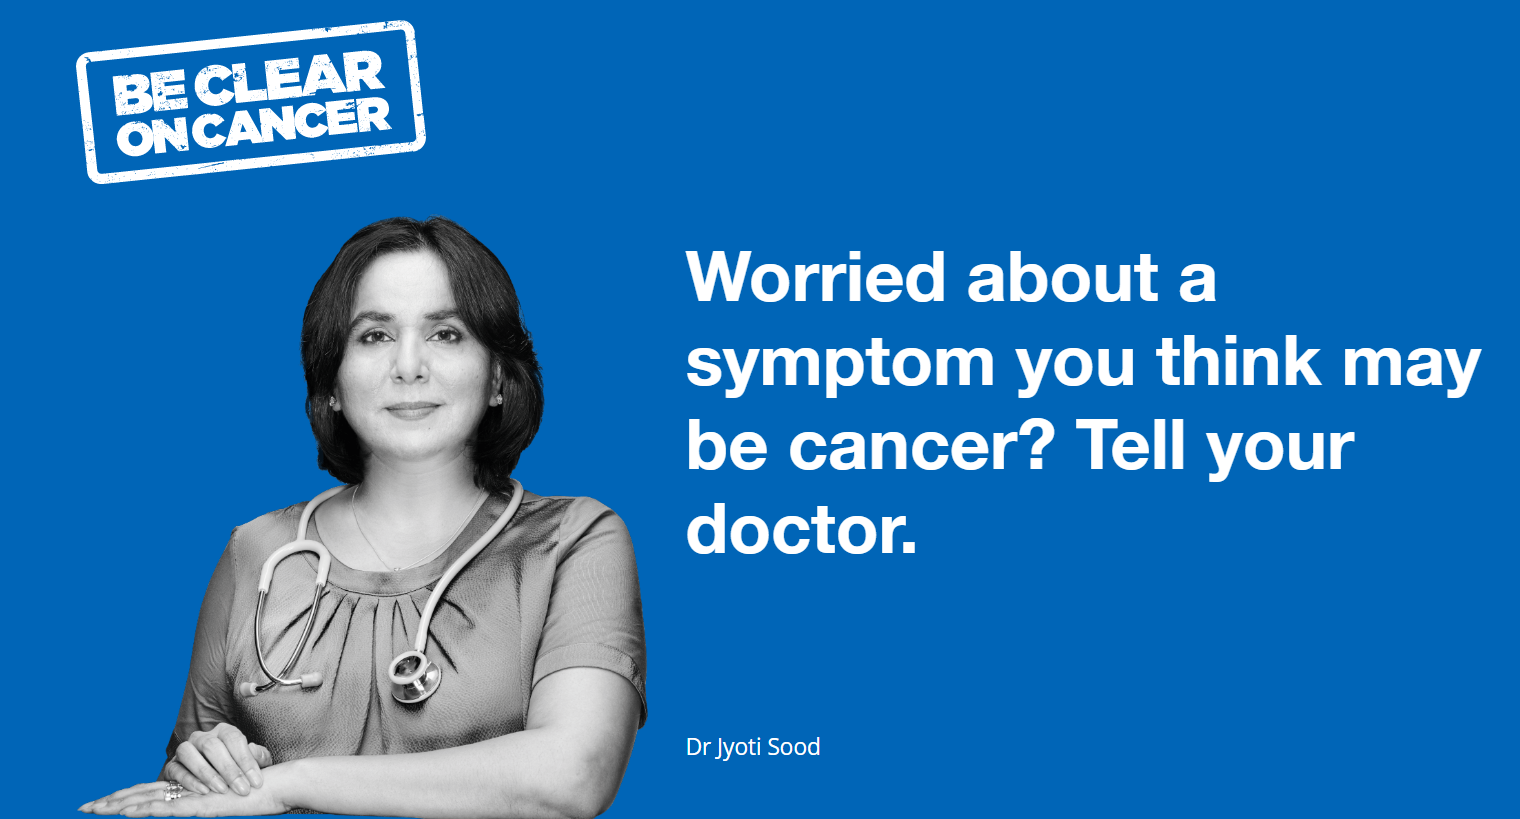 Be clear on cancer. Worried about a symptom you think may be cancer? Tell your doctor.